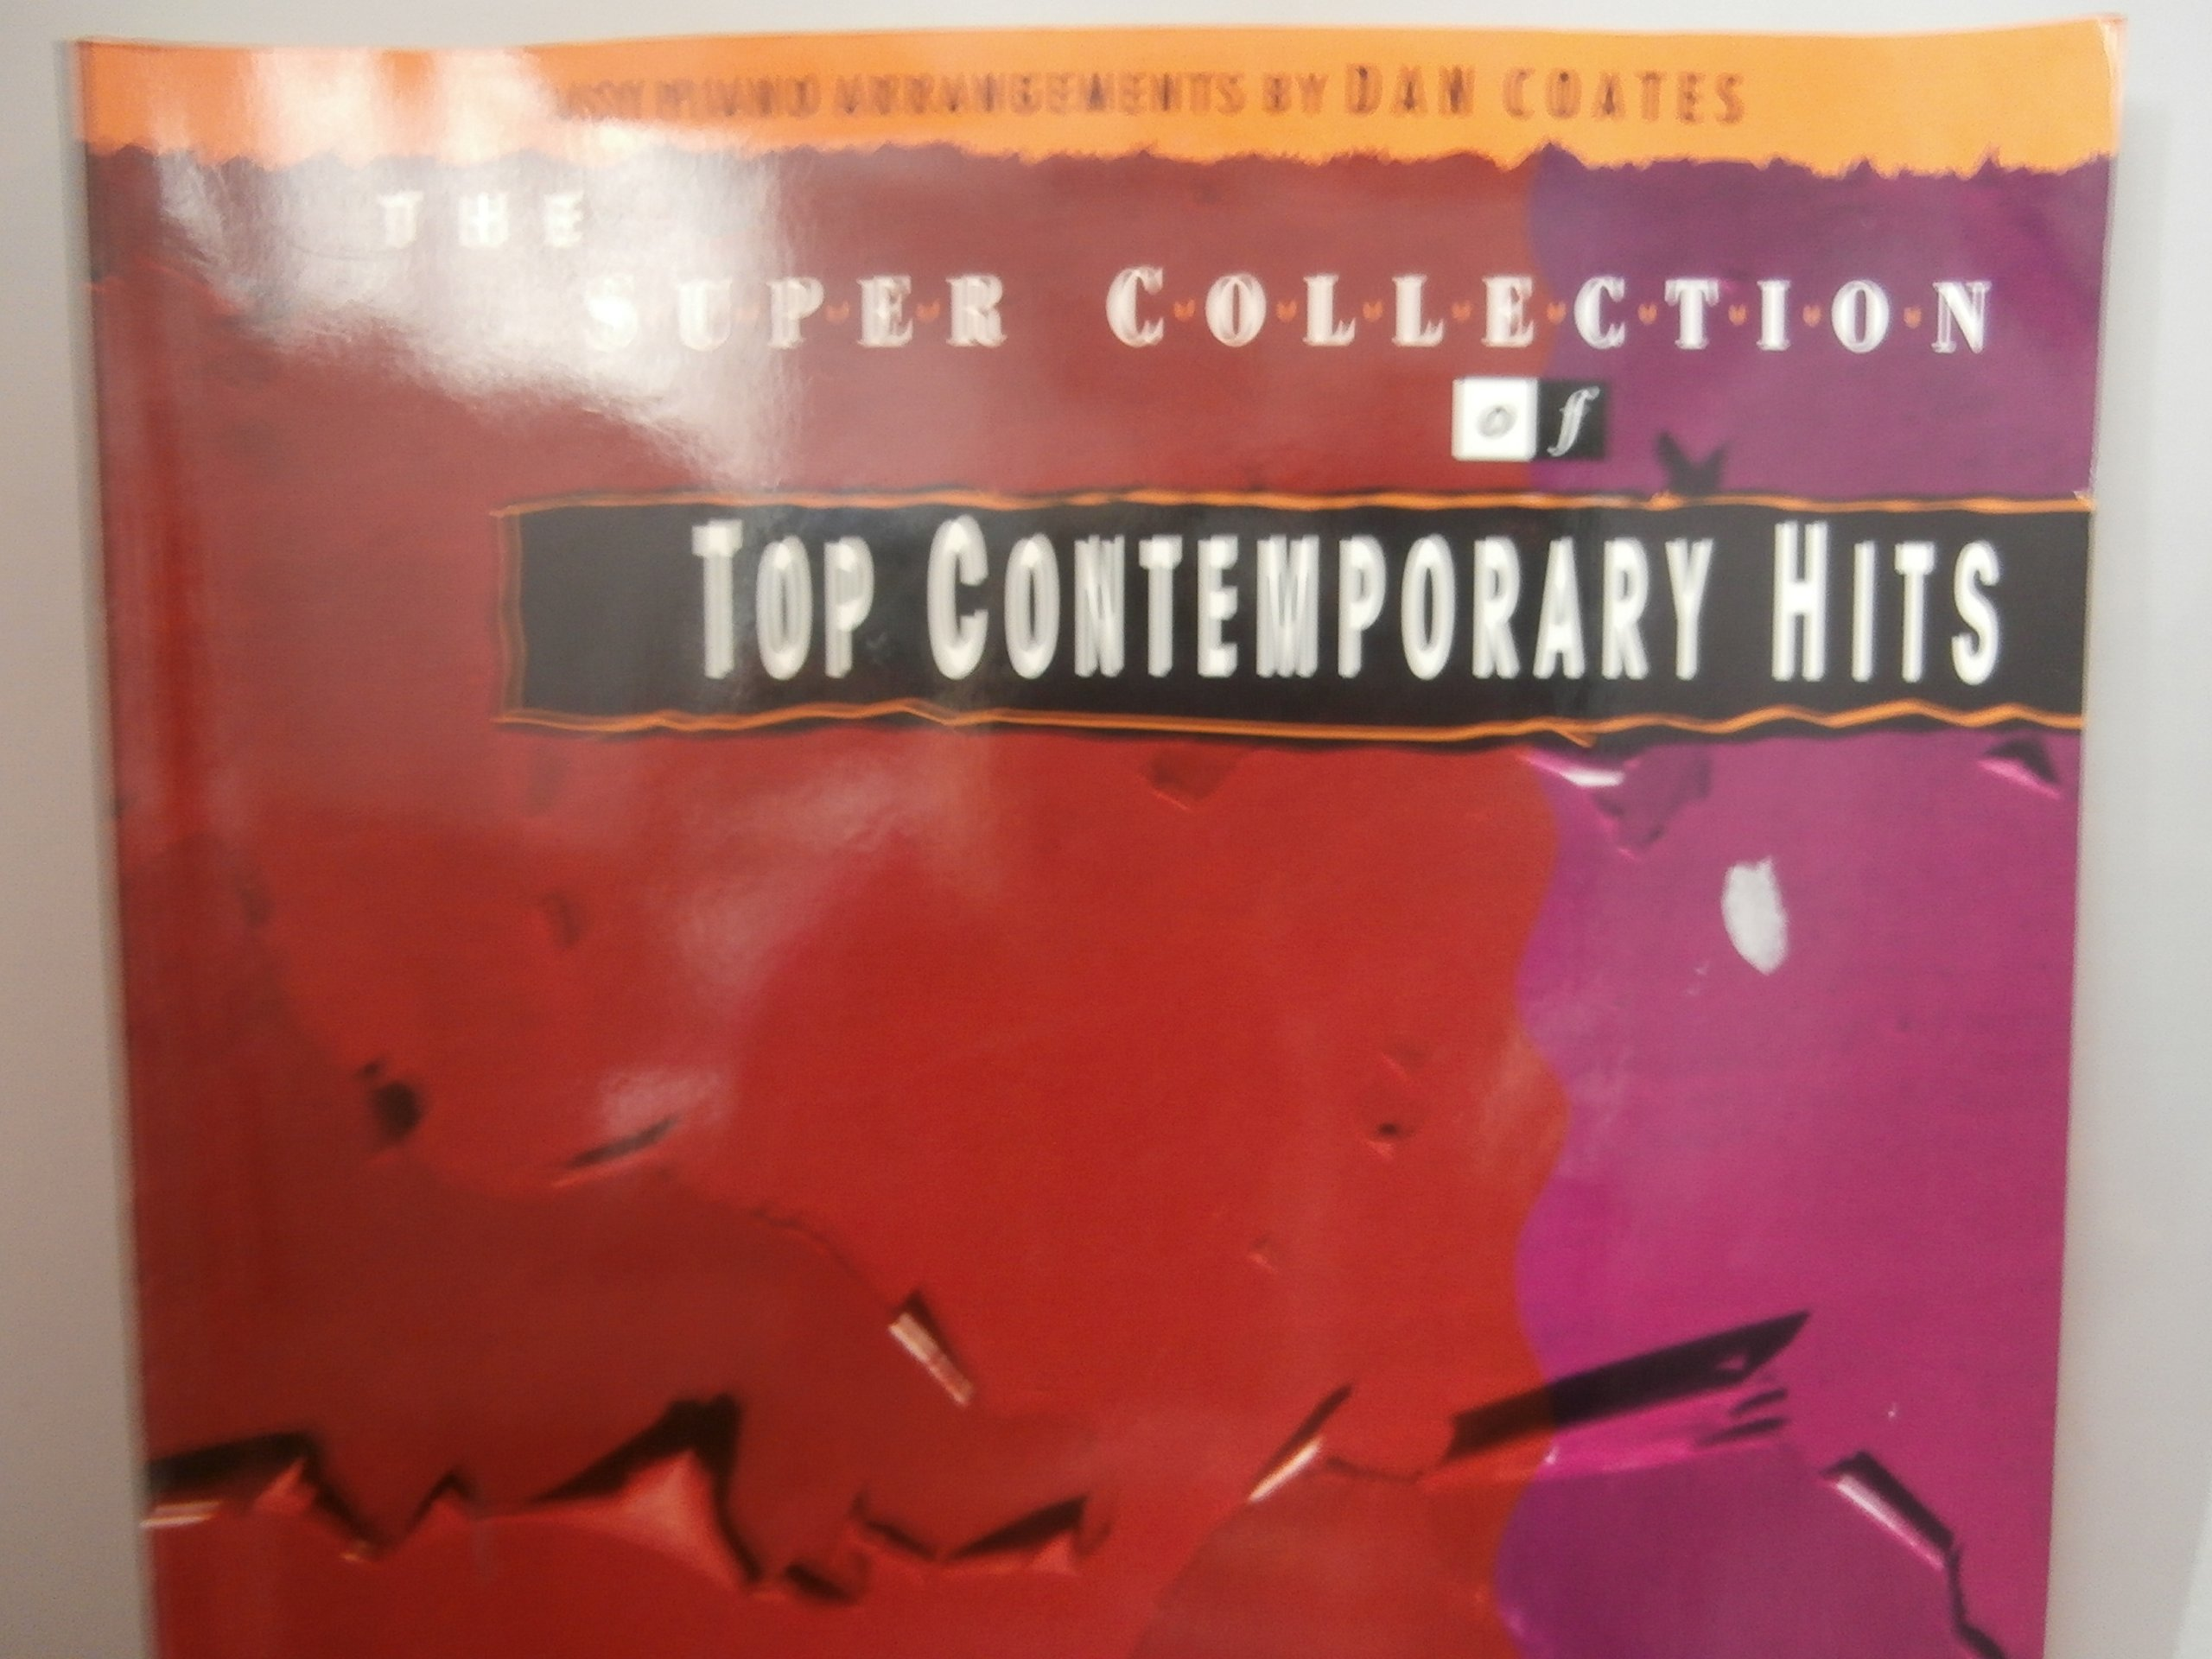 The Super Collection of Top Contemporary Hits: Dan Coates (Arranger